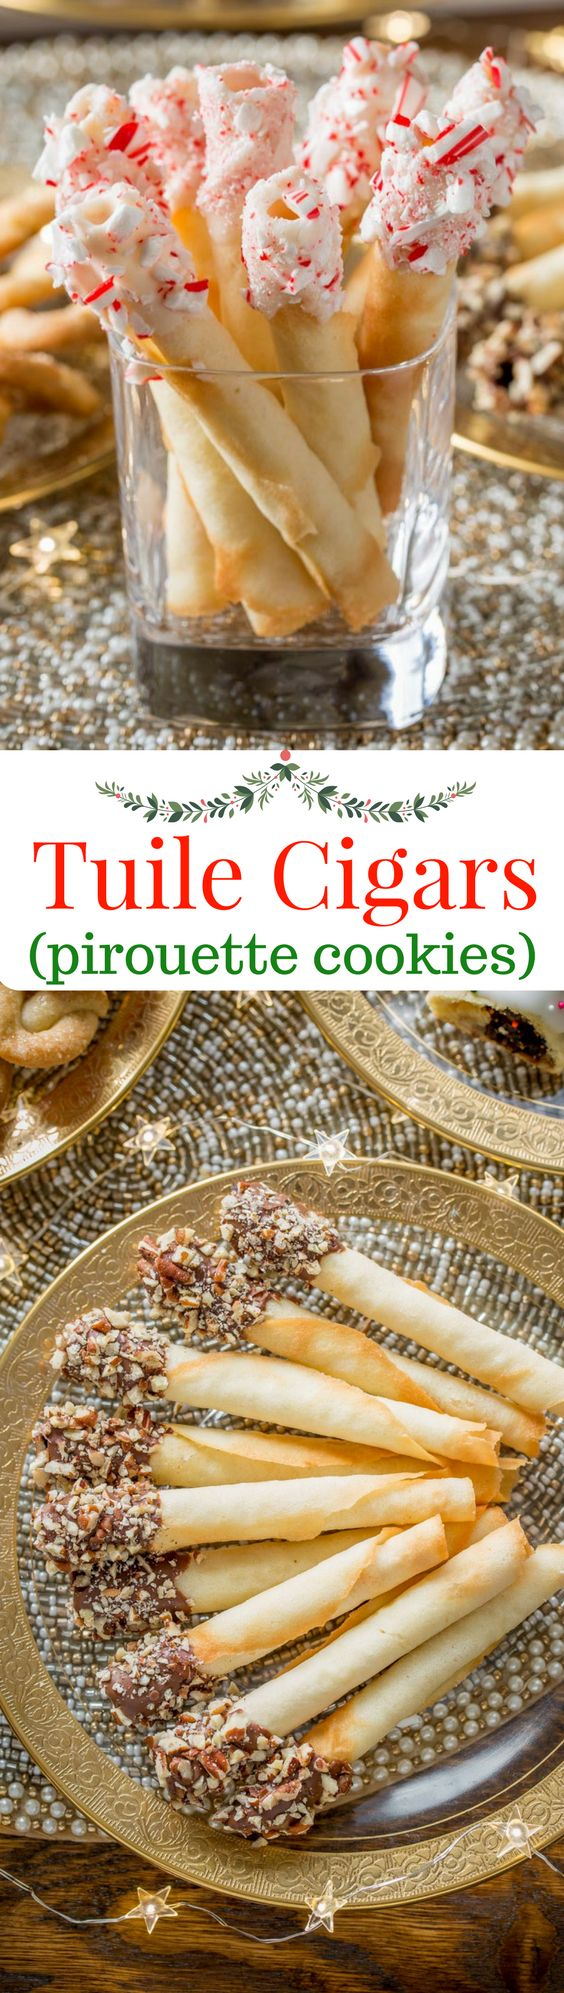 Tuile Cigar Cookies, also known as pirouettes, are crisp, delicate little cookies with a perfect vanilla flavor and buttery crunch. www.savingdessert.com